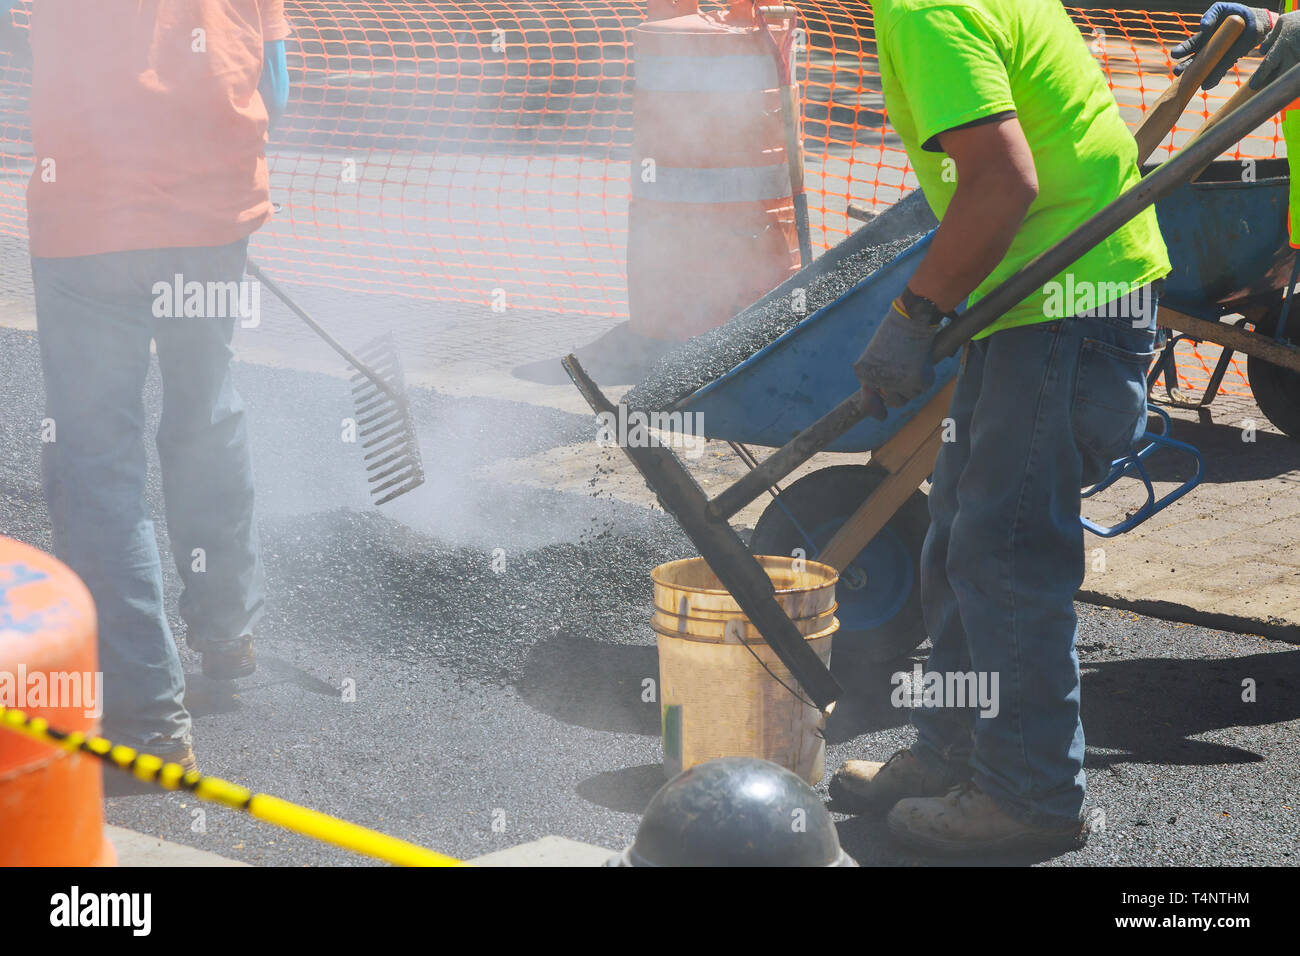 Workers on a industry aying fresh asphalt bitumen during